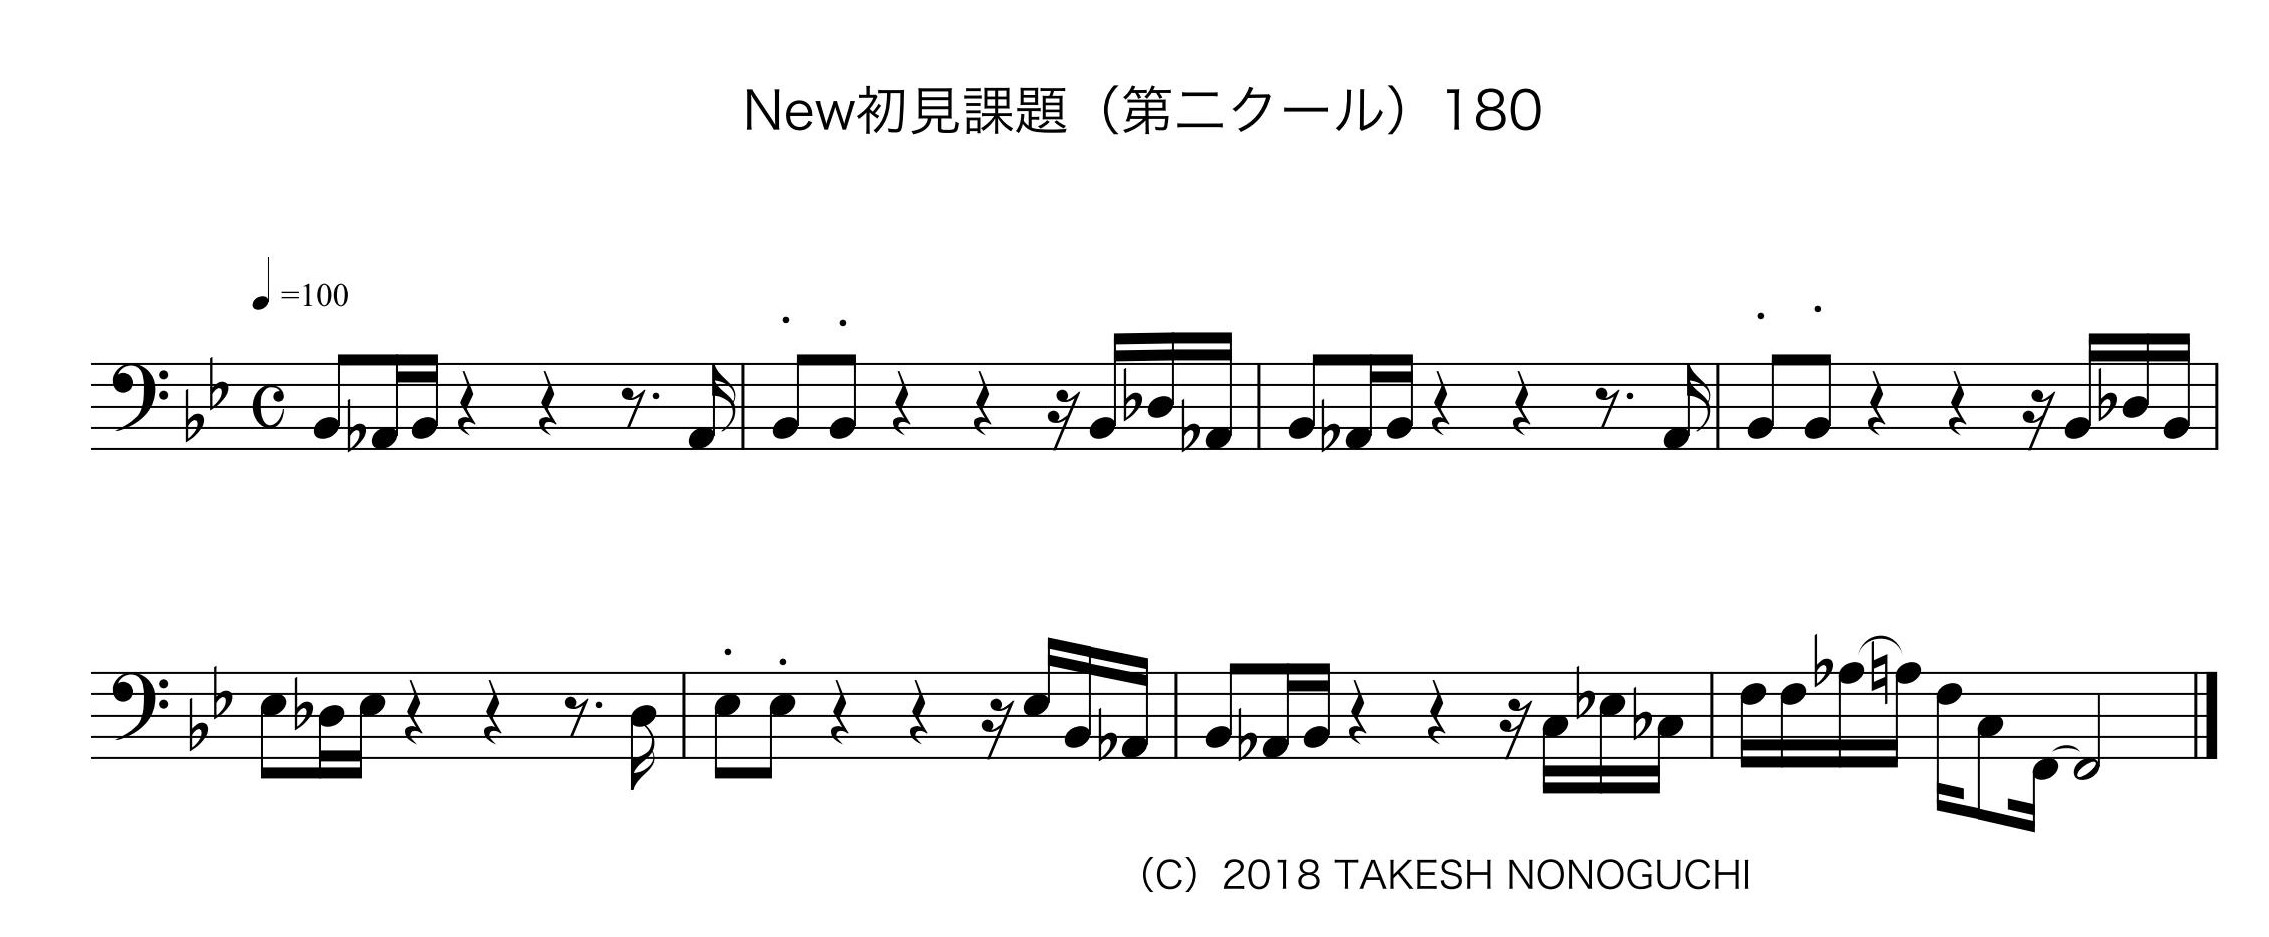 NEW初見課題(第二クール)NO.180